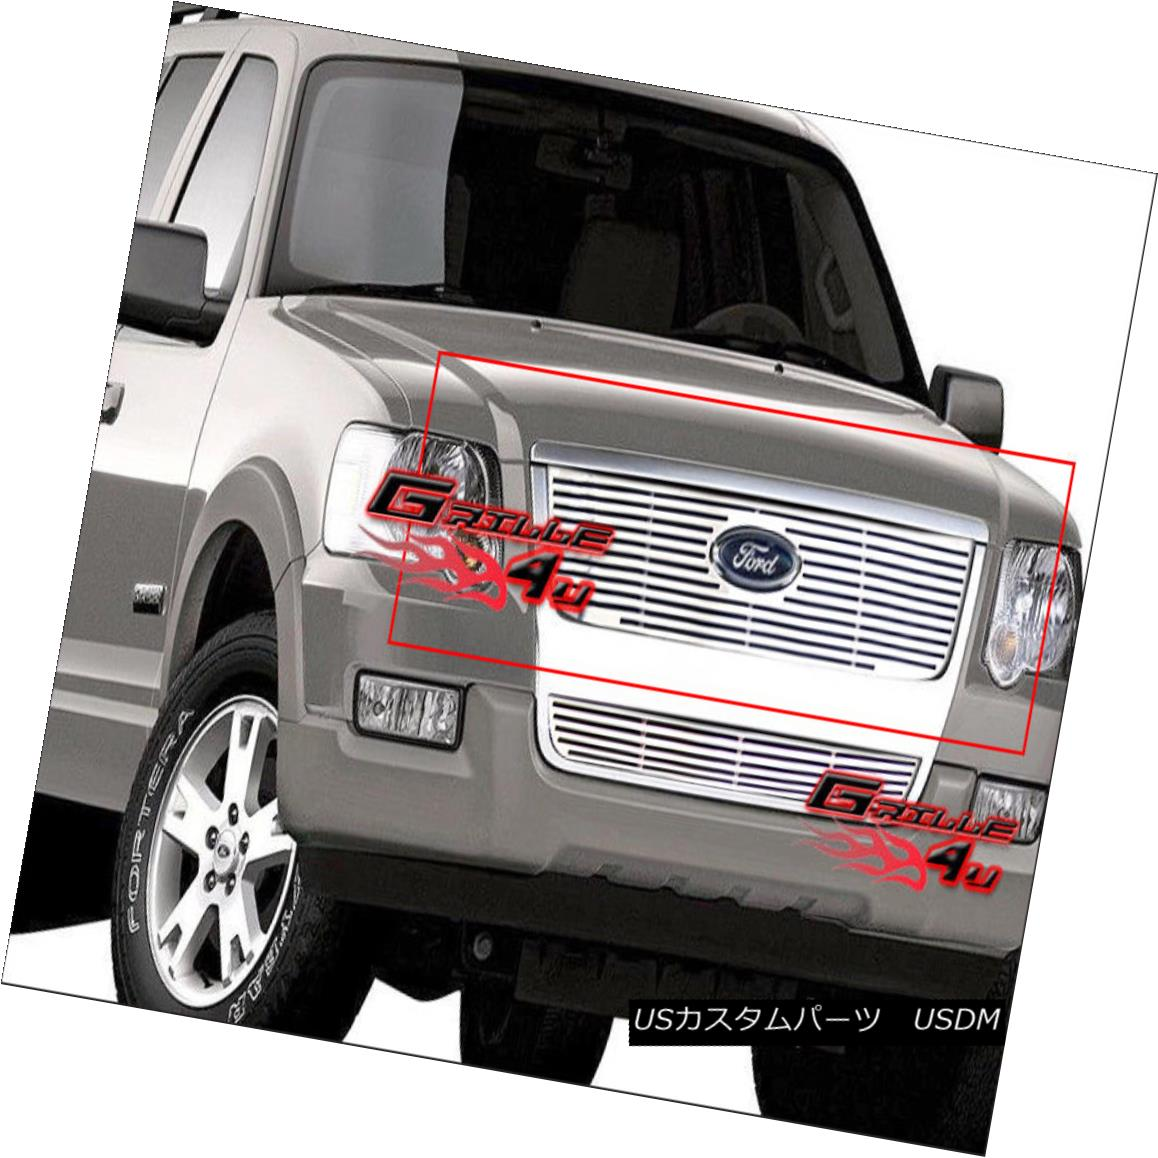 グリル For 06-07 Ford Explorer Perimeter Grille Insert 06-07 Ford Explorerペリメーターグリルインサート